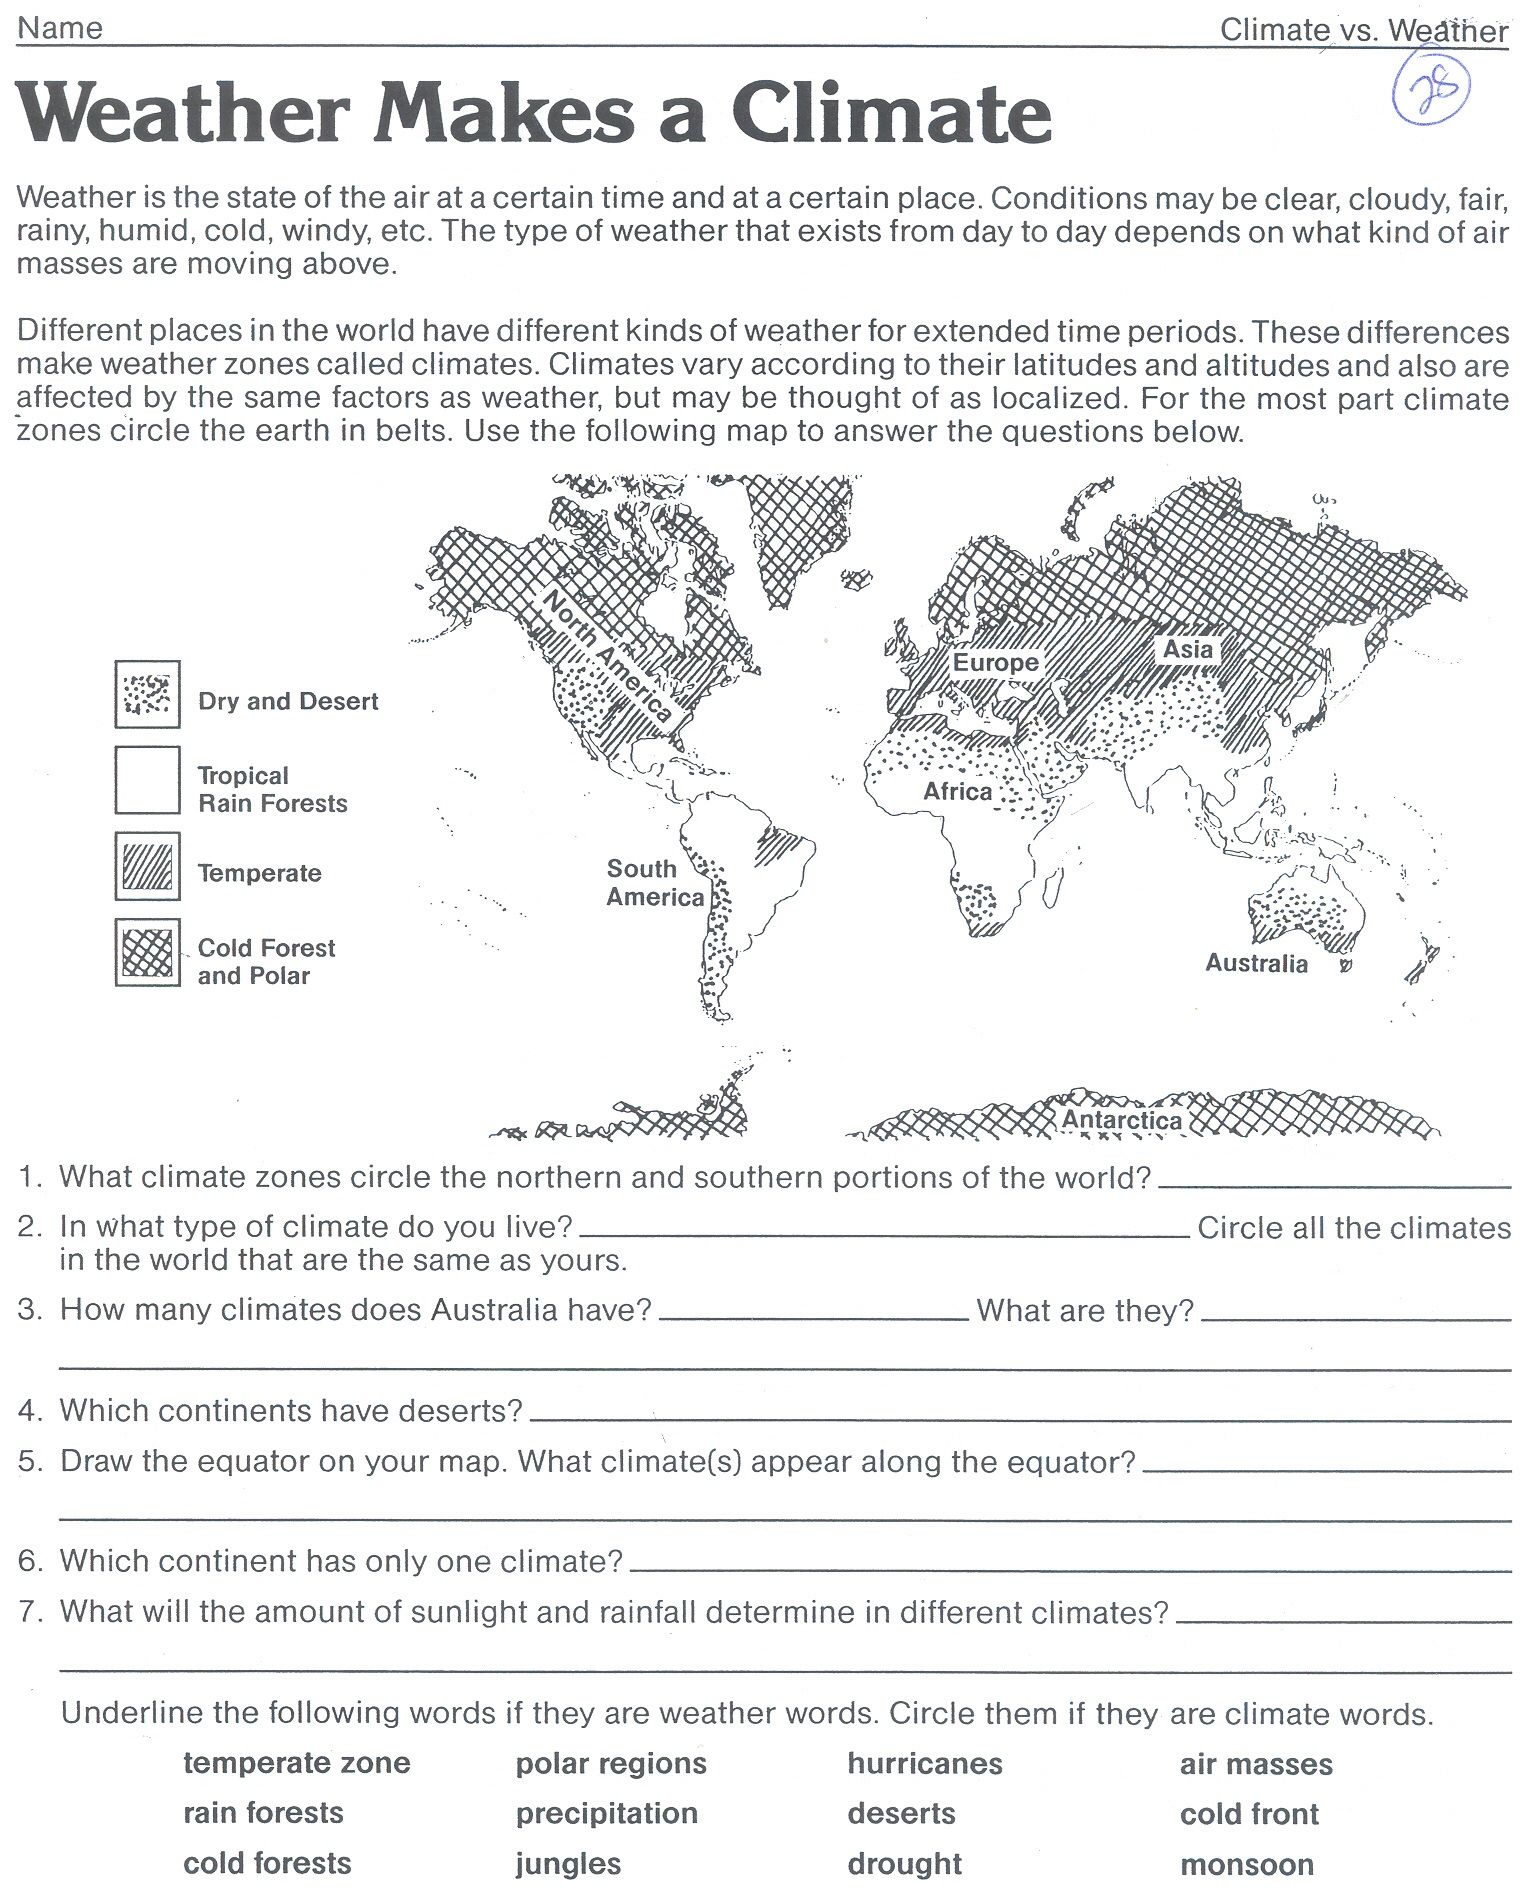 worksheet Geography Worksheets Year 7 weather makes a climate worksheet science pinterest worksheets worksheet